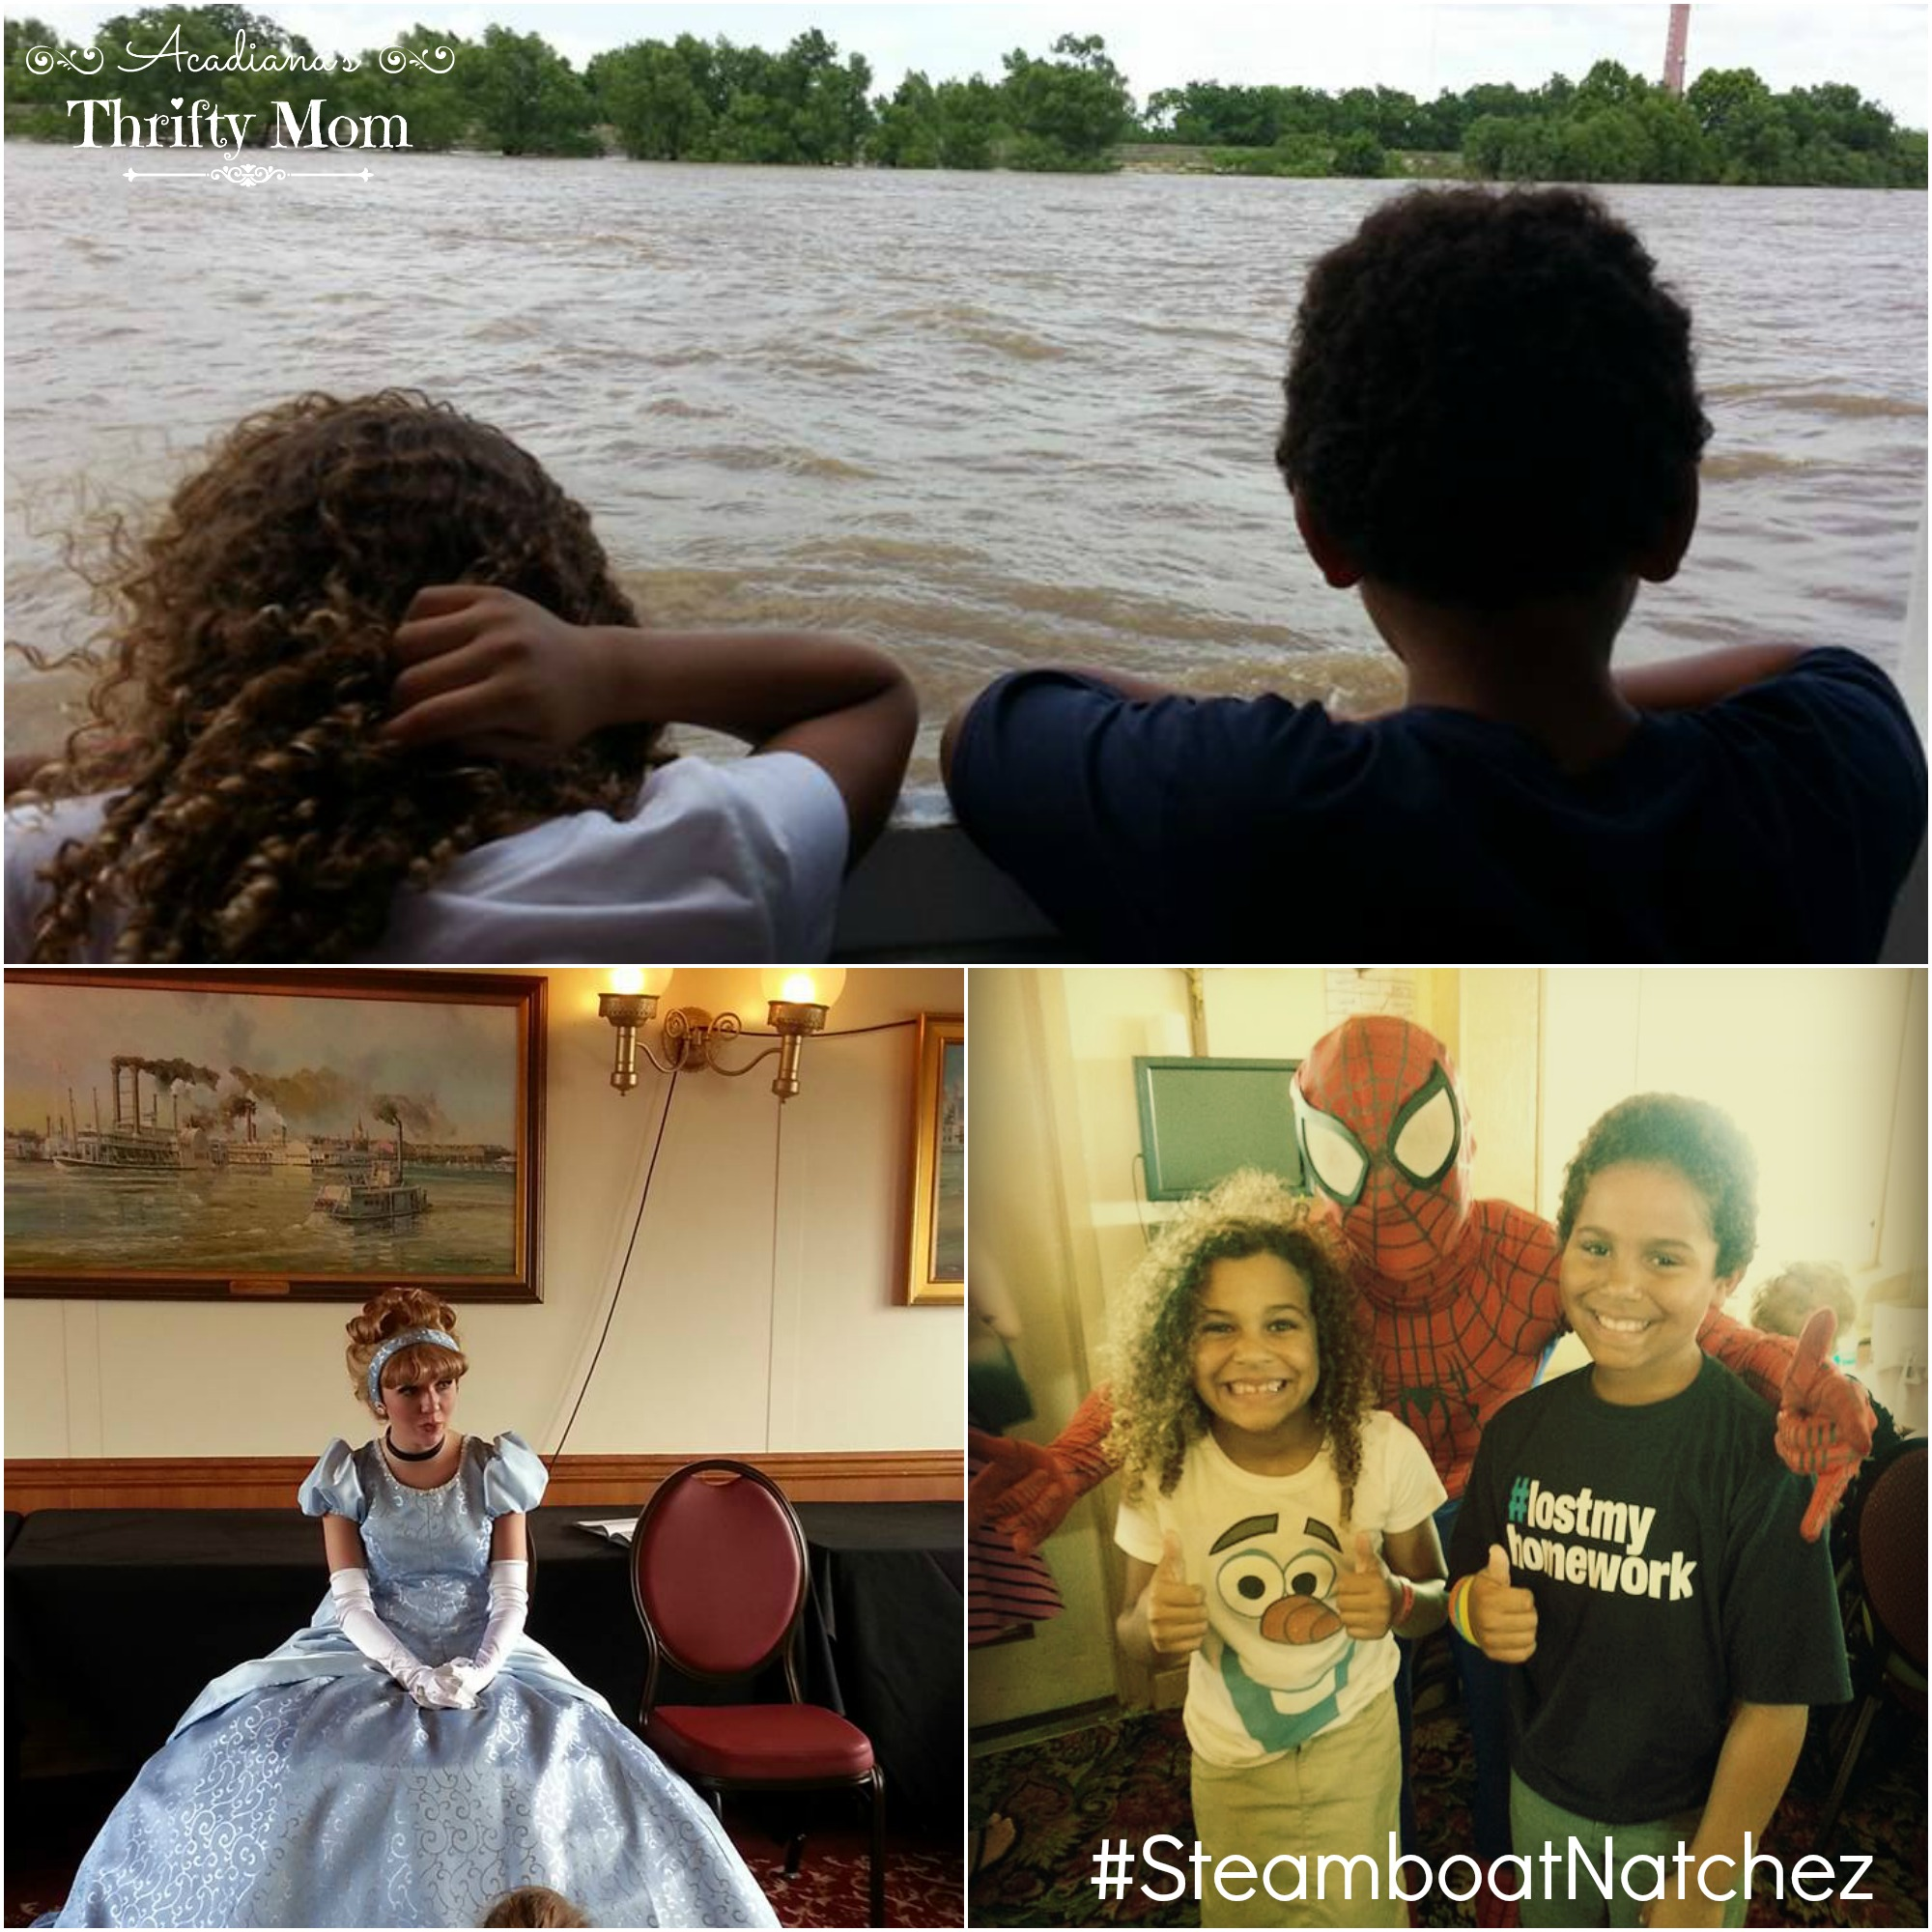 Our Journey On The Steamboat Natchez #SteamboatNatchez